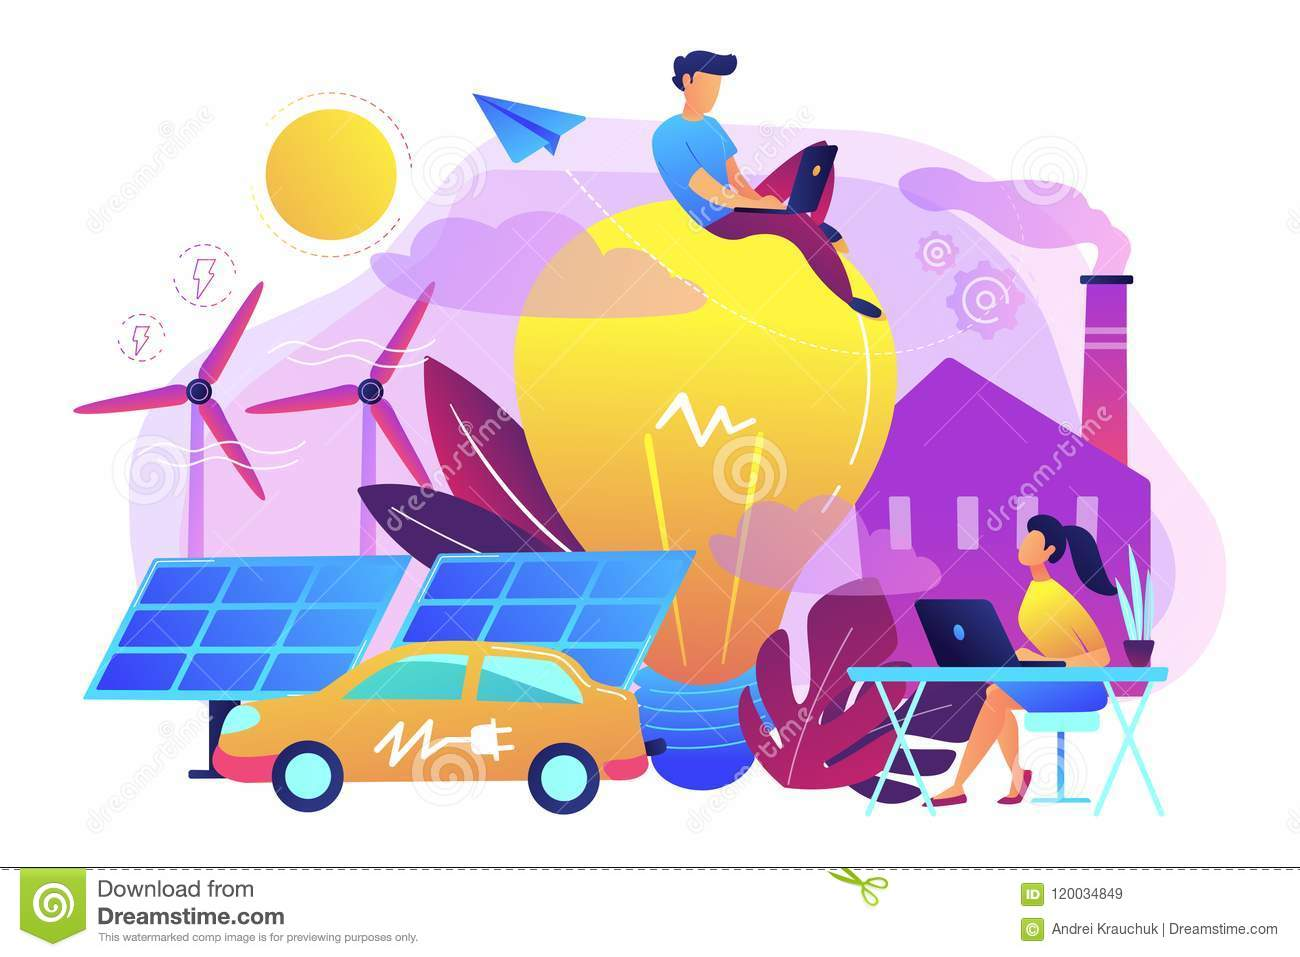 Smart energy and power systems IoT smart city concept vector ill